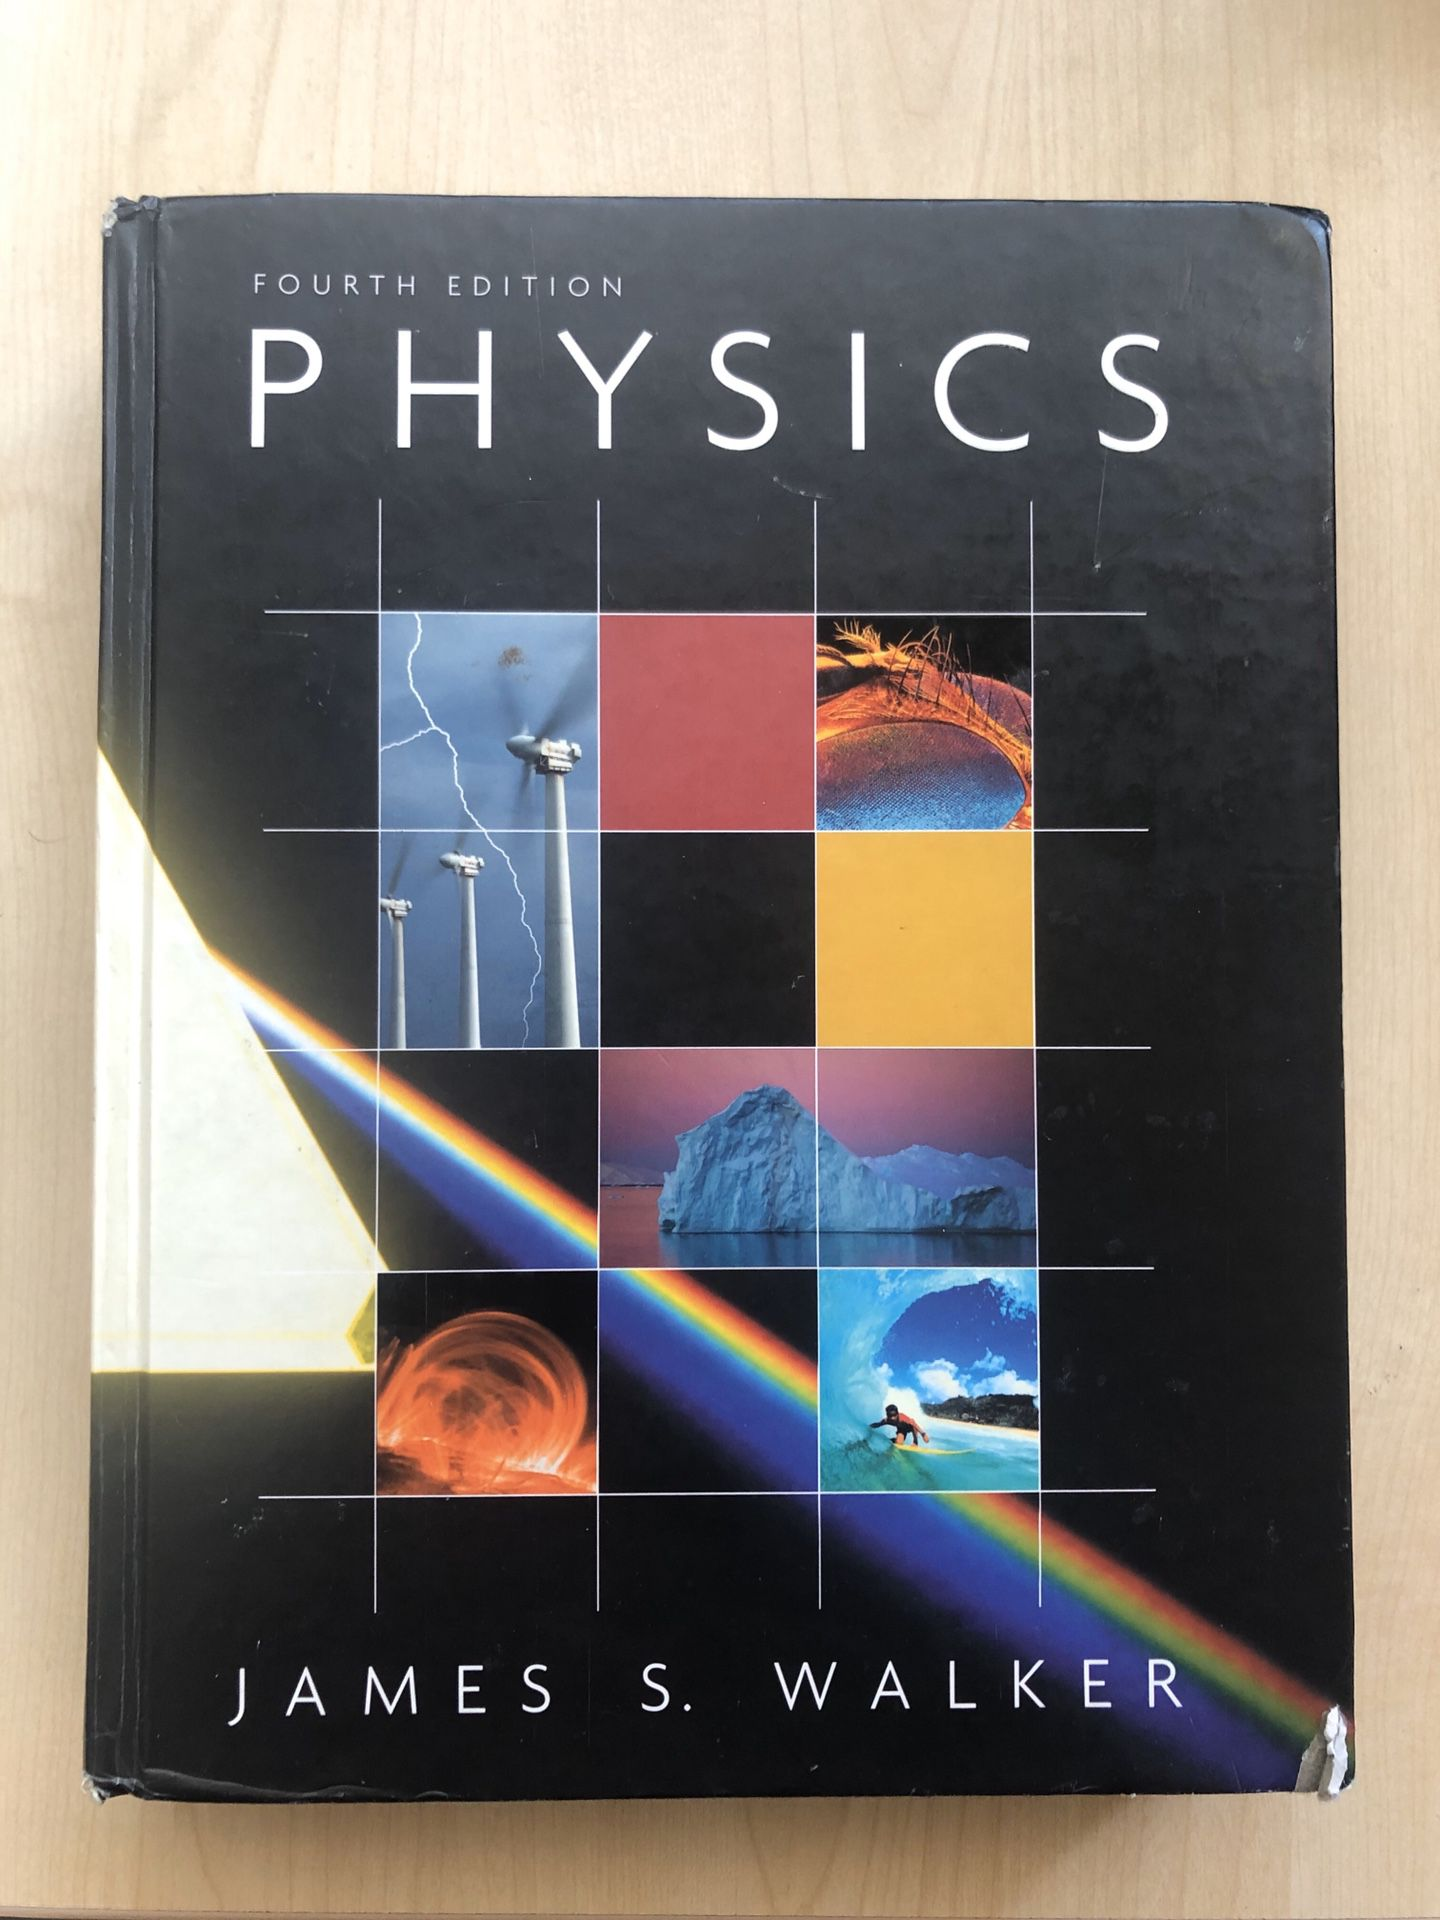 James S. Walker Physics textbook fourth edition